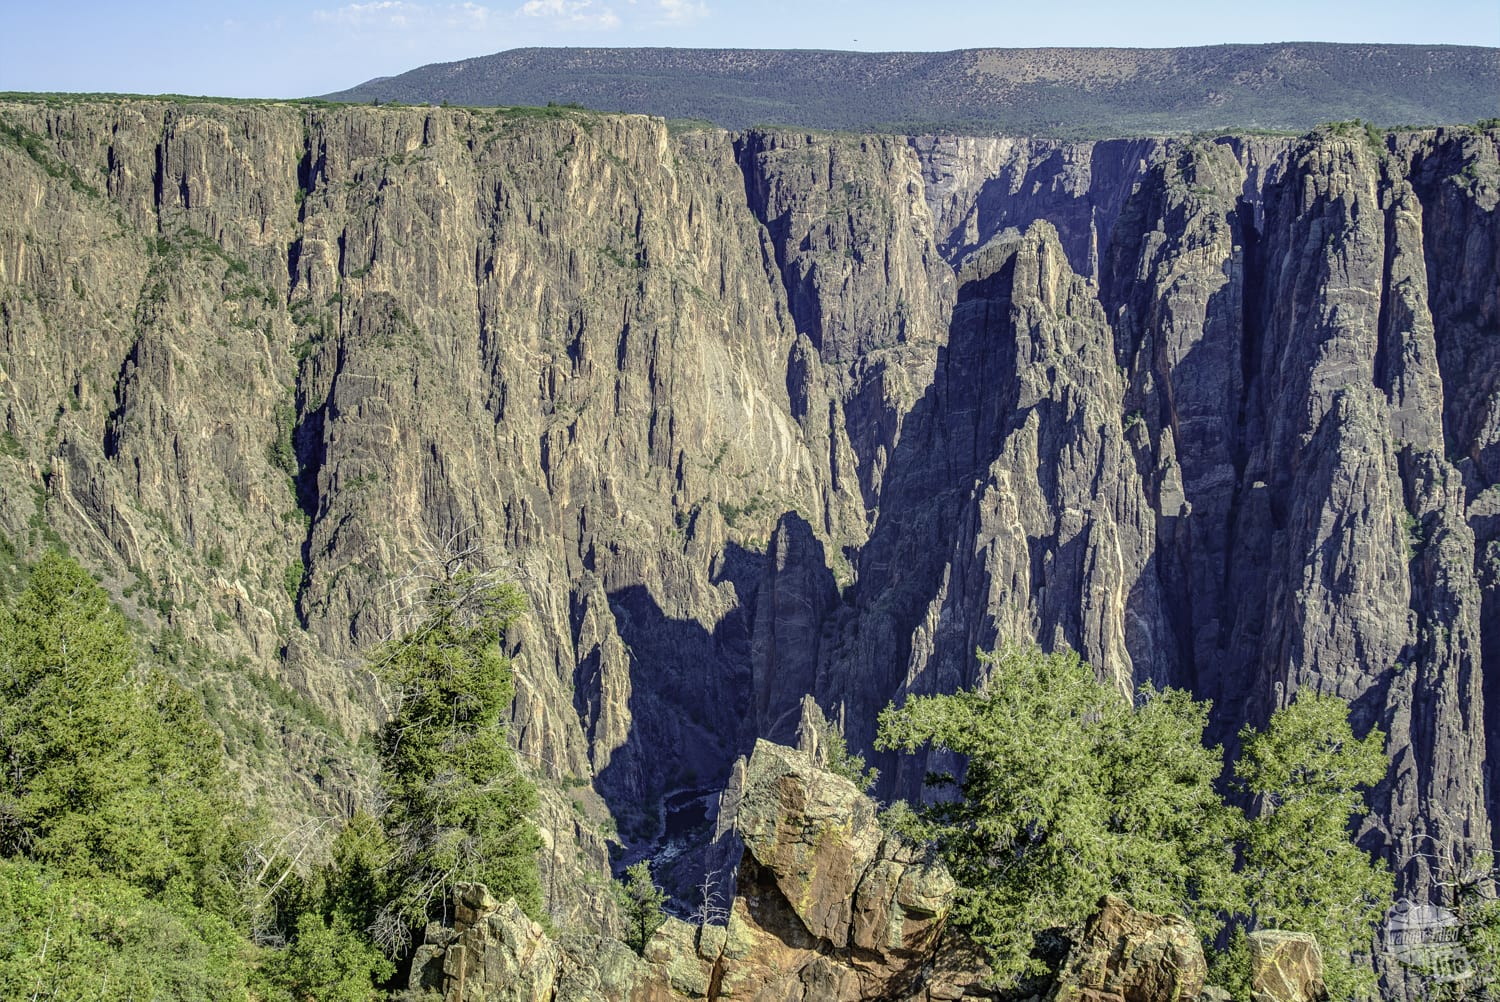 Another view of the Black Canyon.